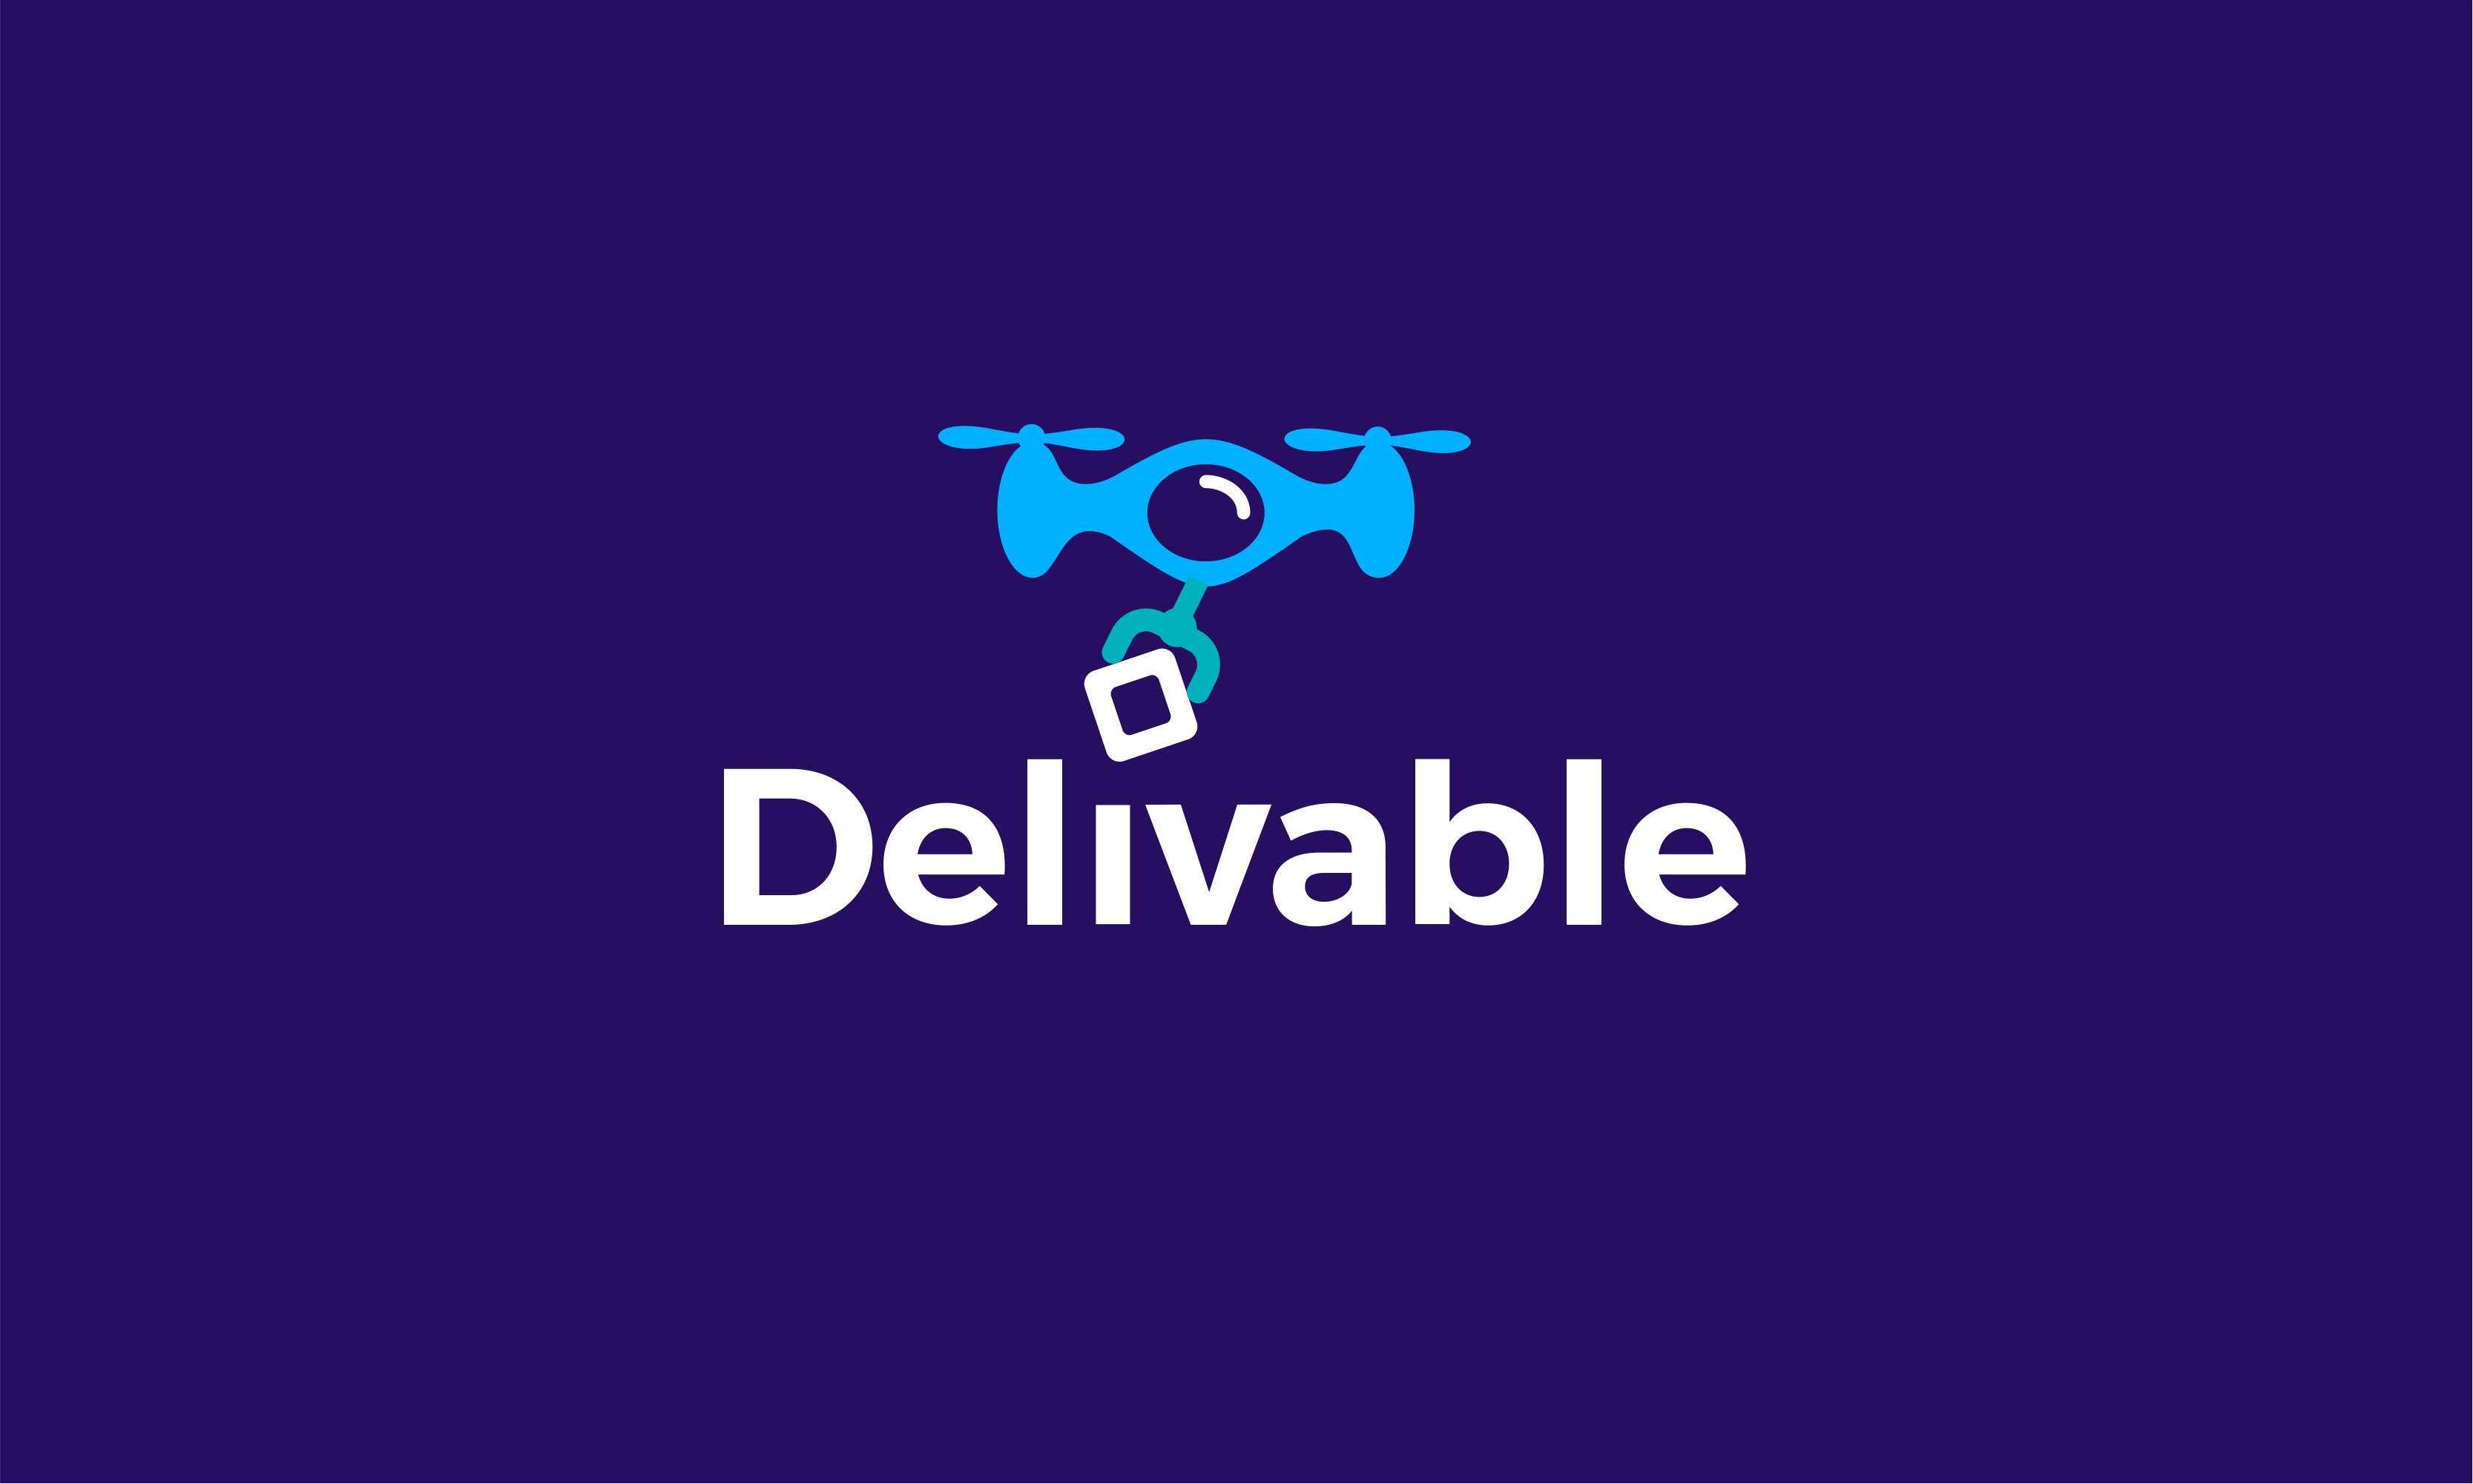 Delivable